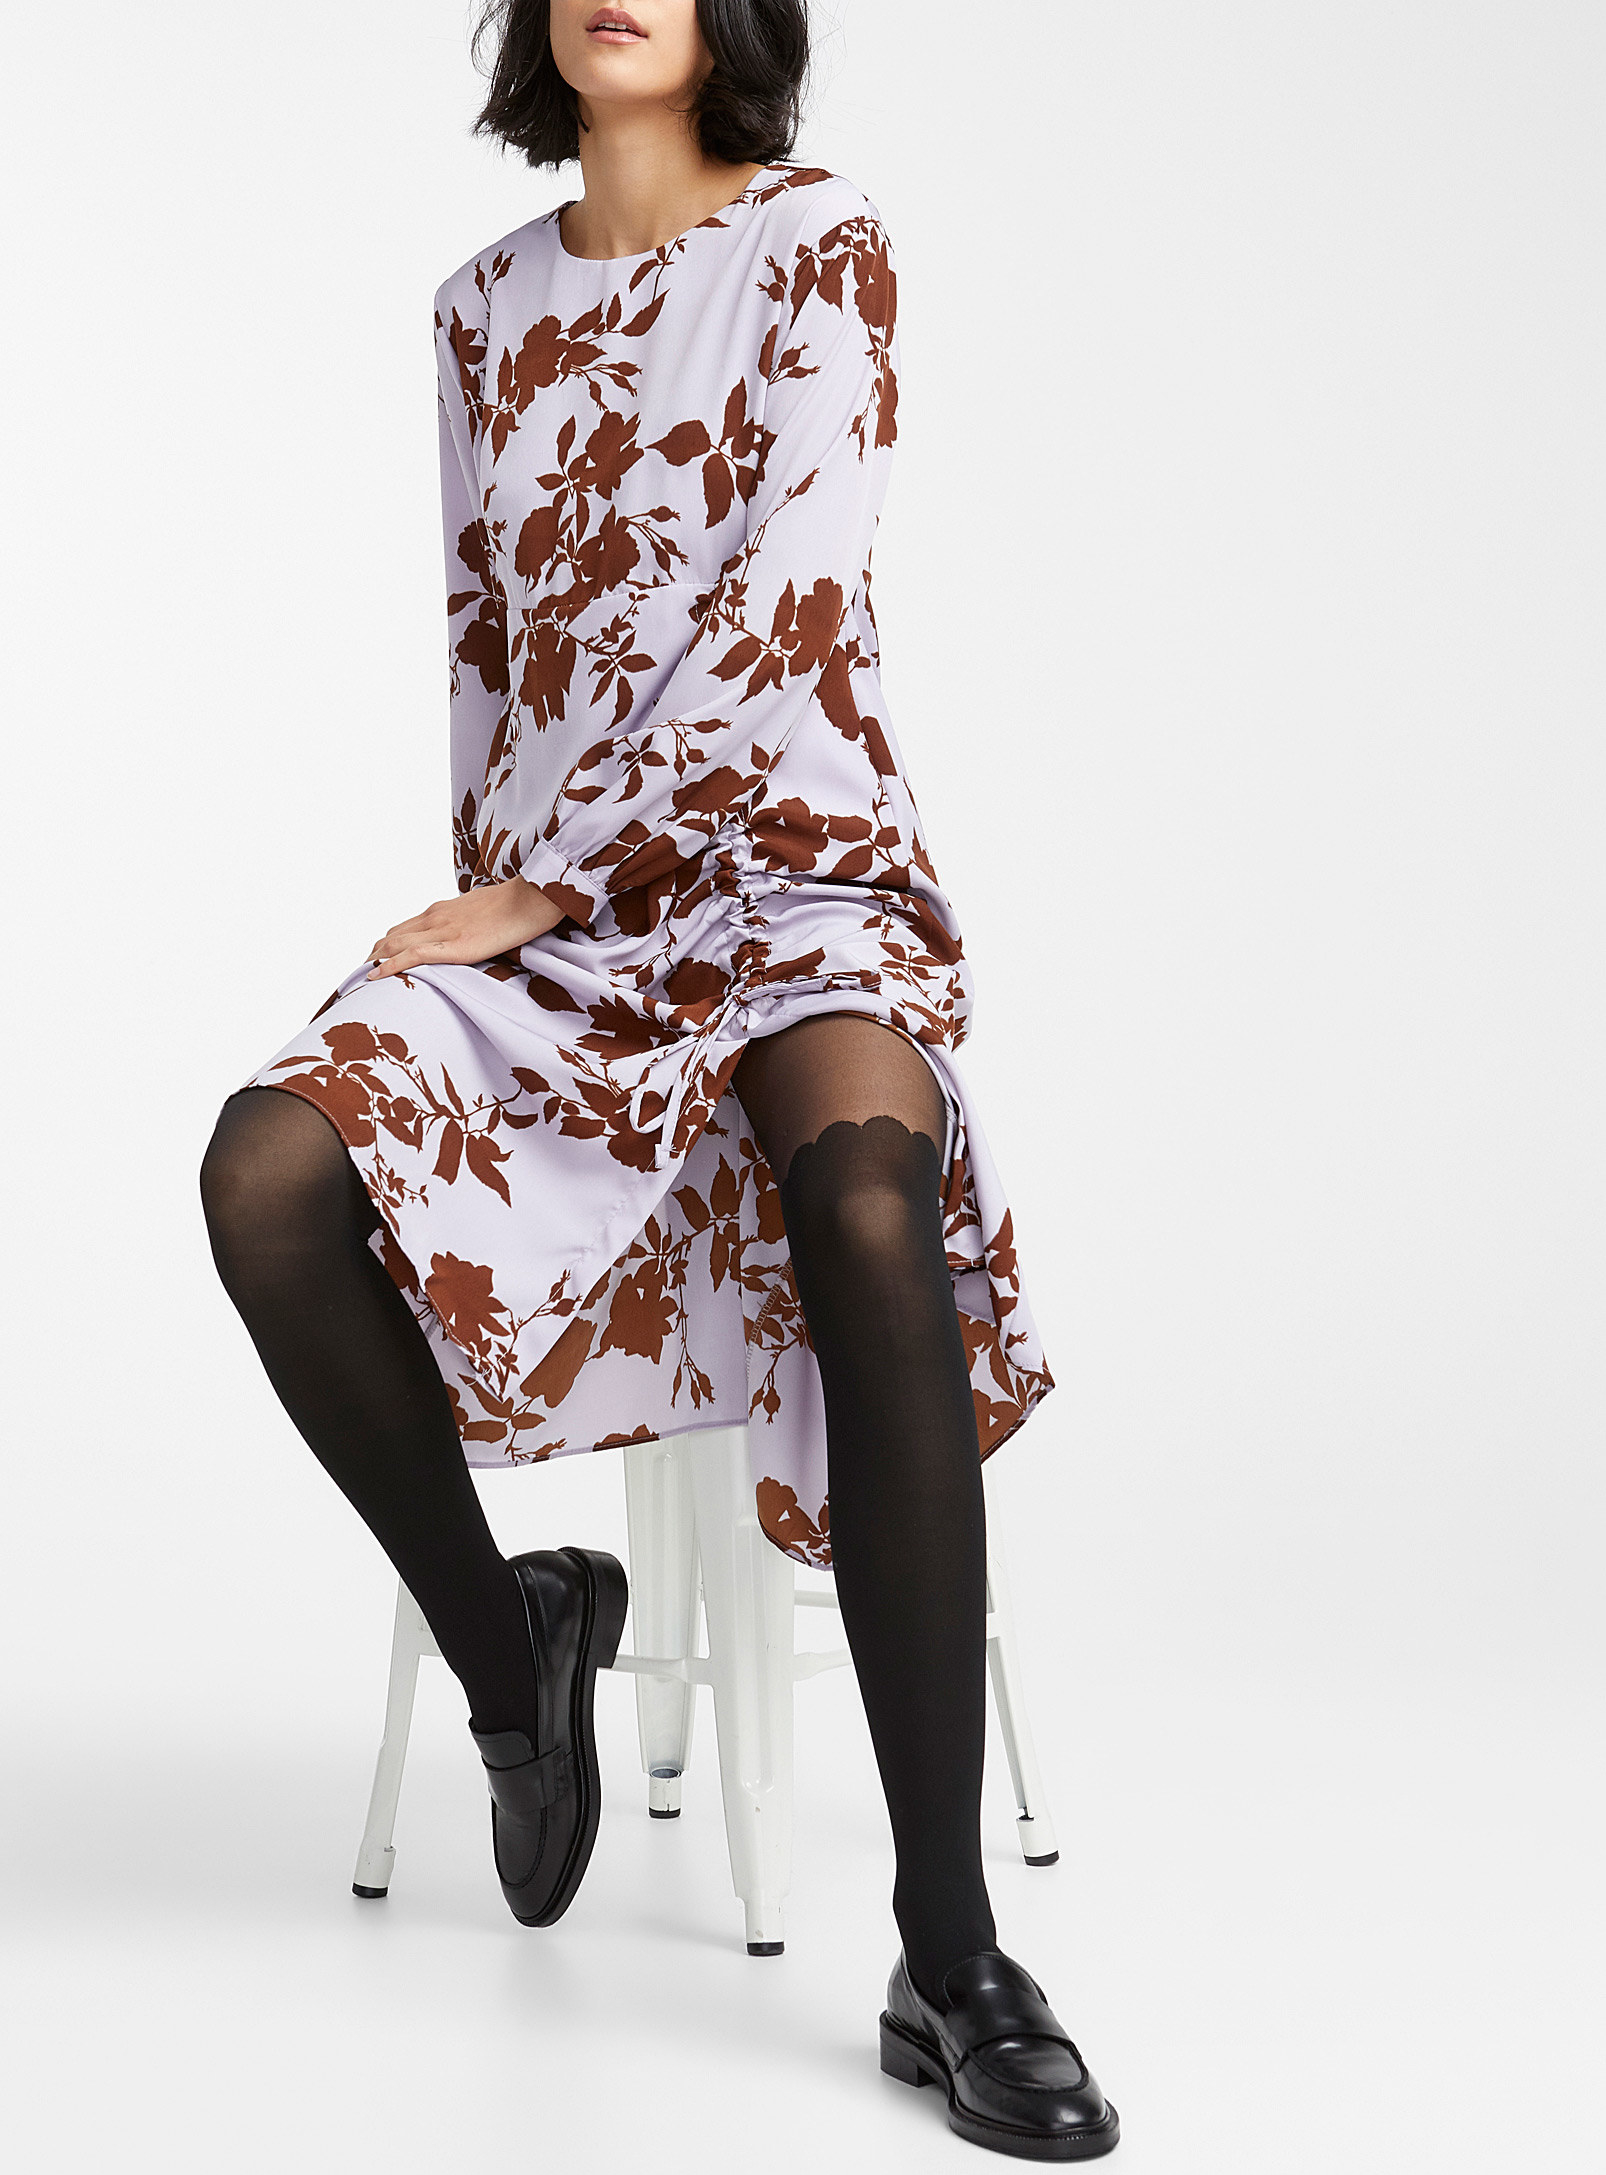 A person sitting on a stool wearing a dress and nylons with an opaque pattern that ends just over the knee